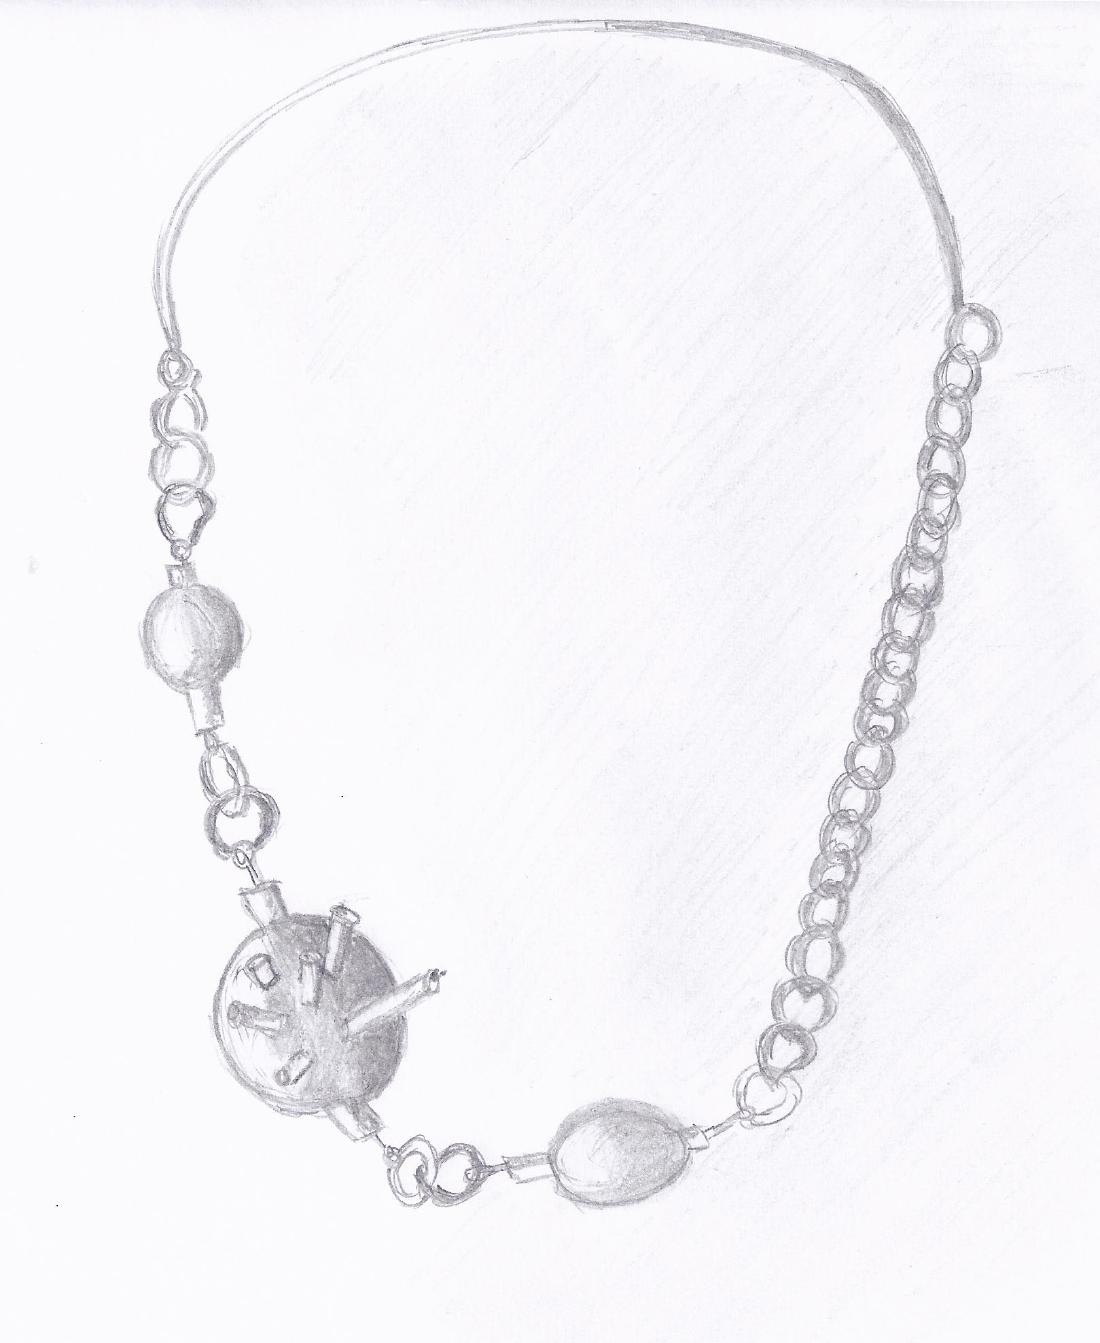 Silver and Copper necklace drawing